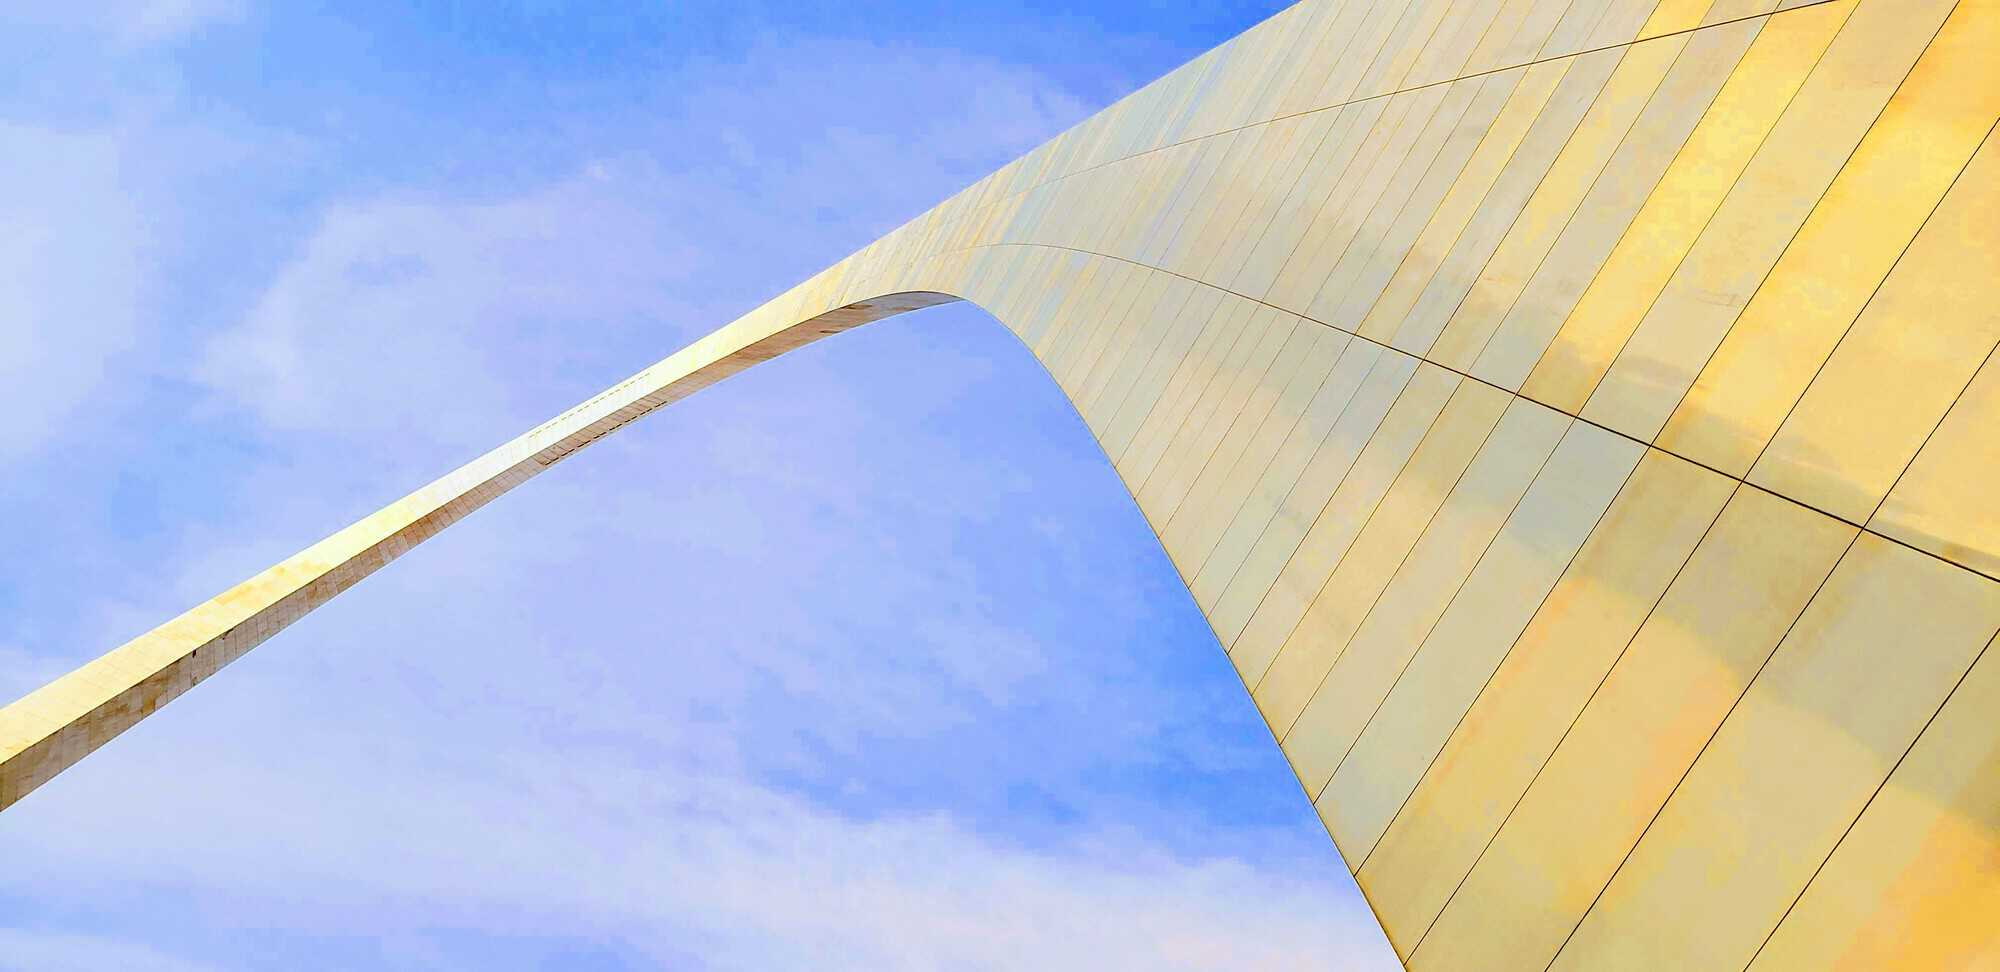 10 Fun Things to Do in St. Louis with Kids